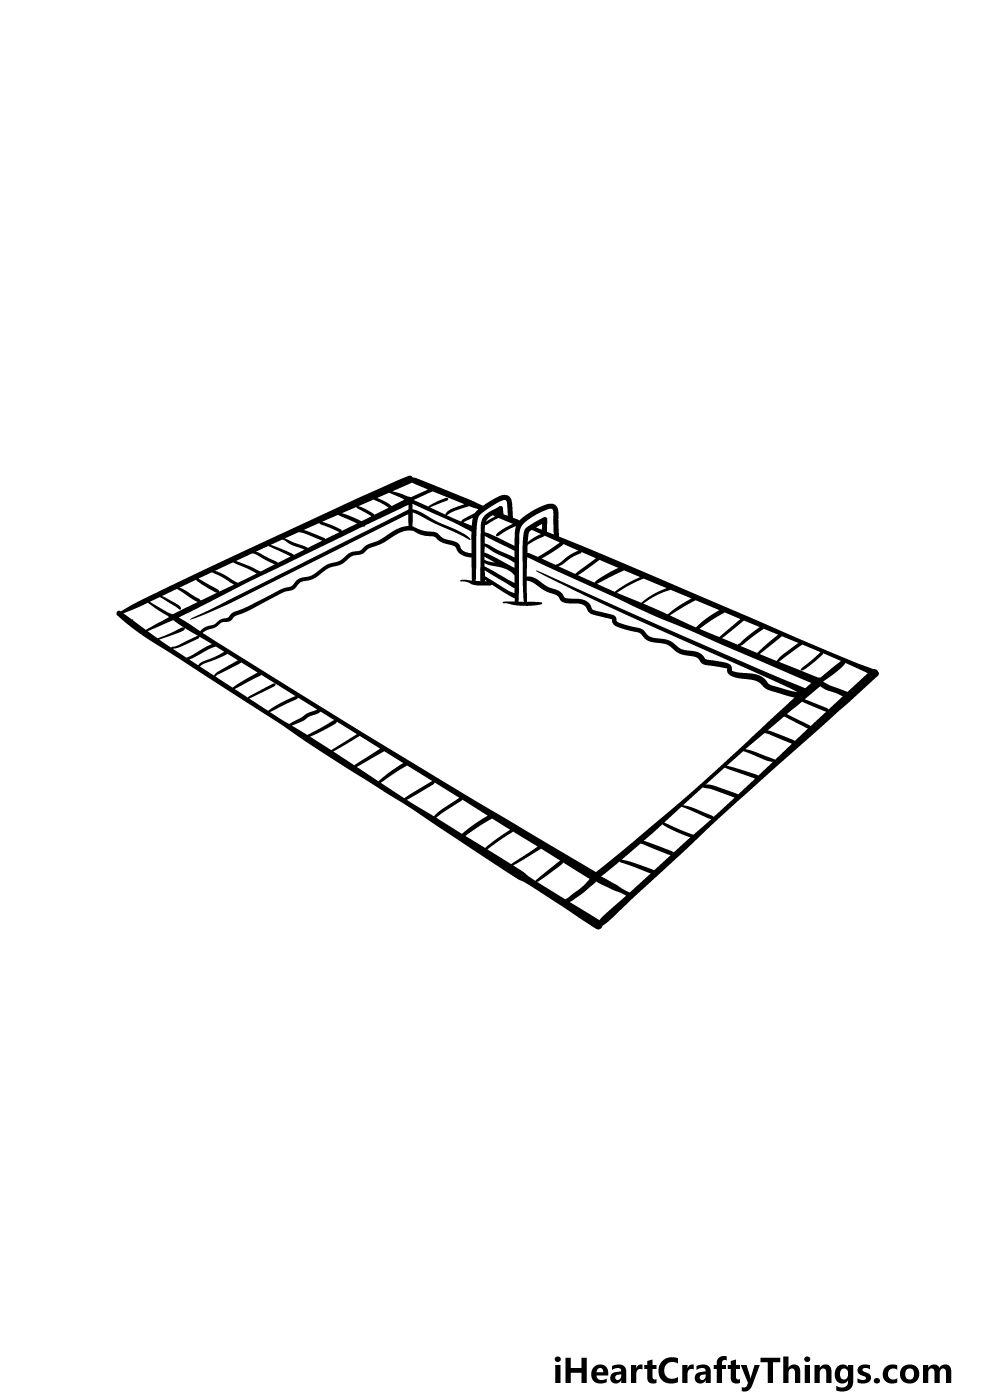 drawing a pool step 5